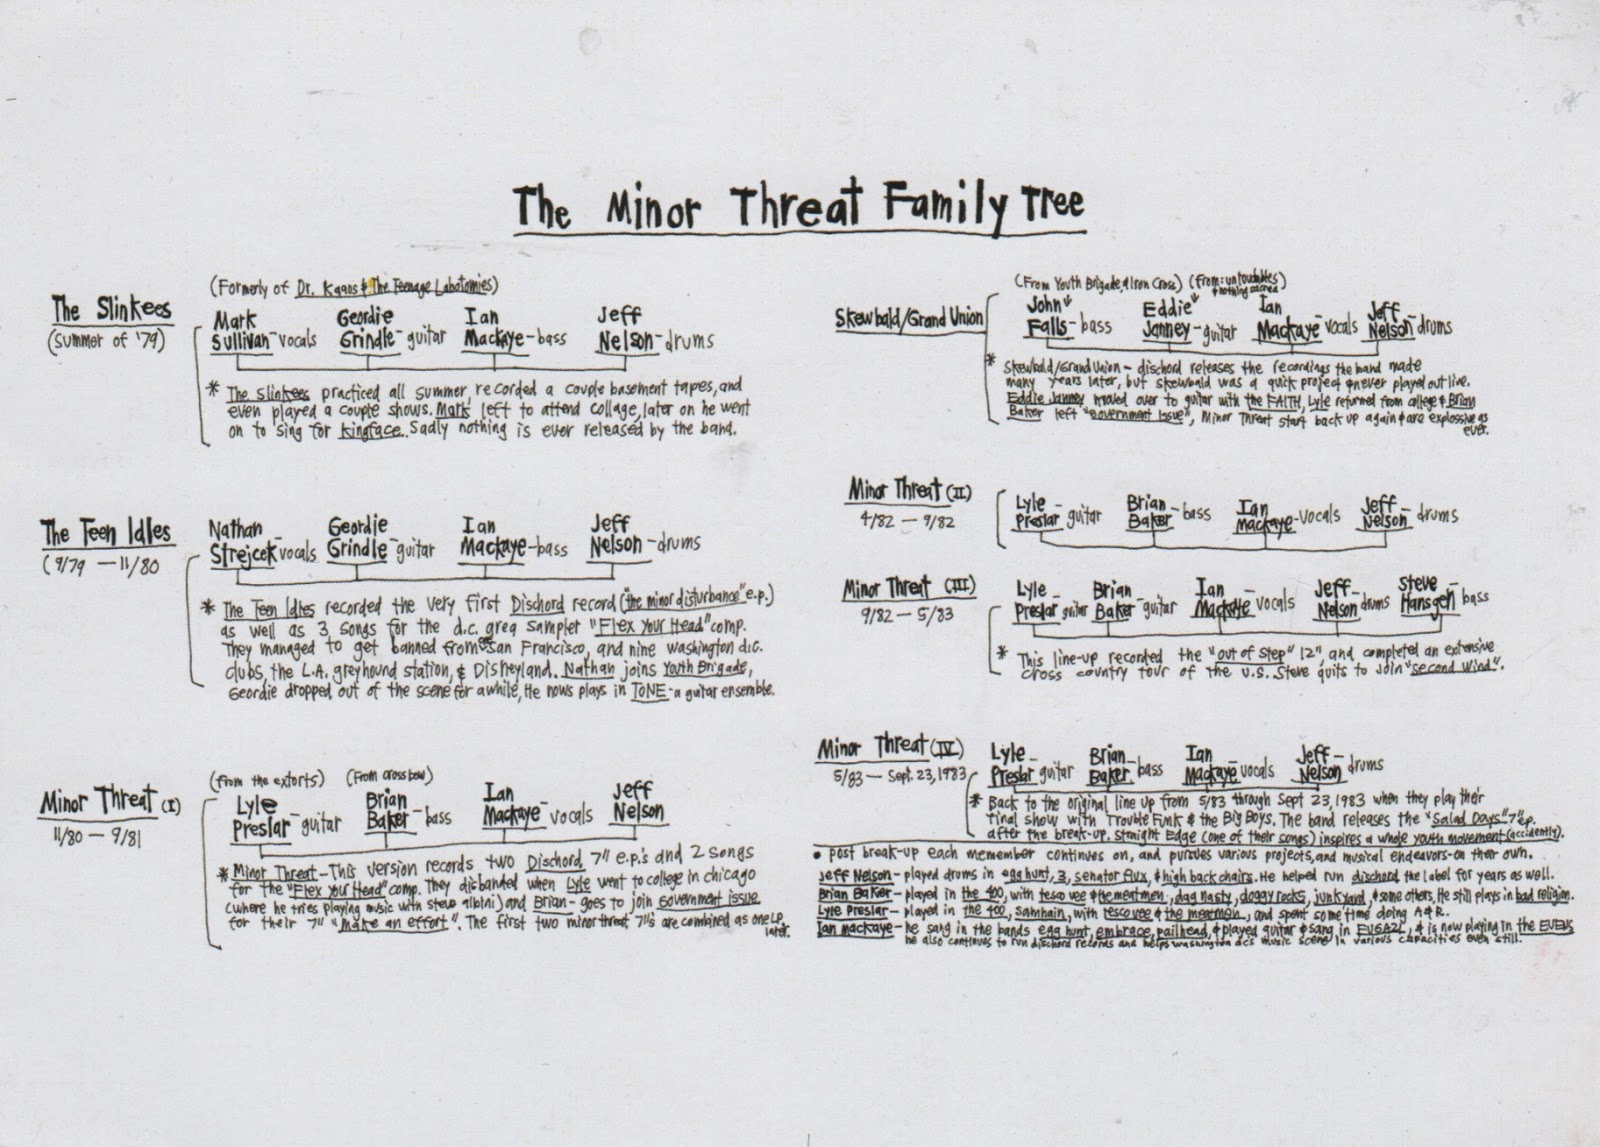 threat family tree alex haley family tree the minor threat family tree ...